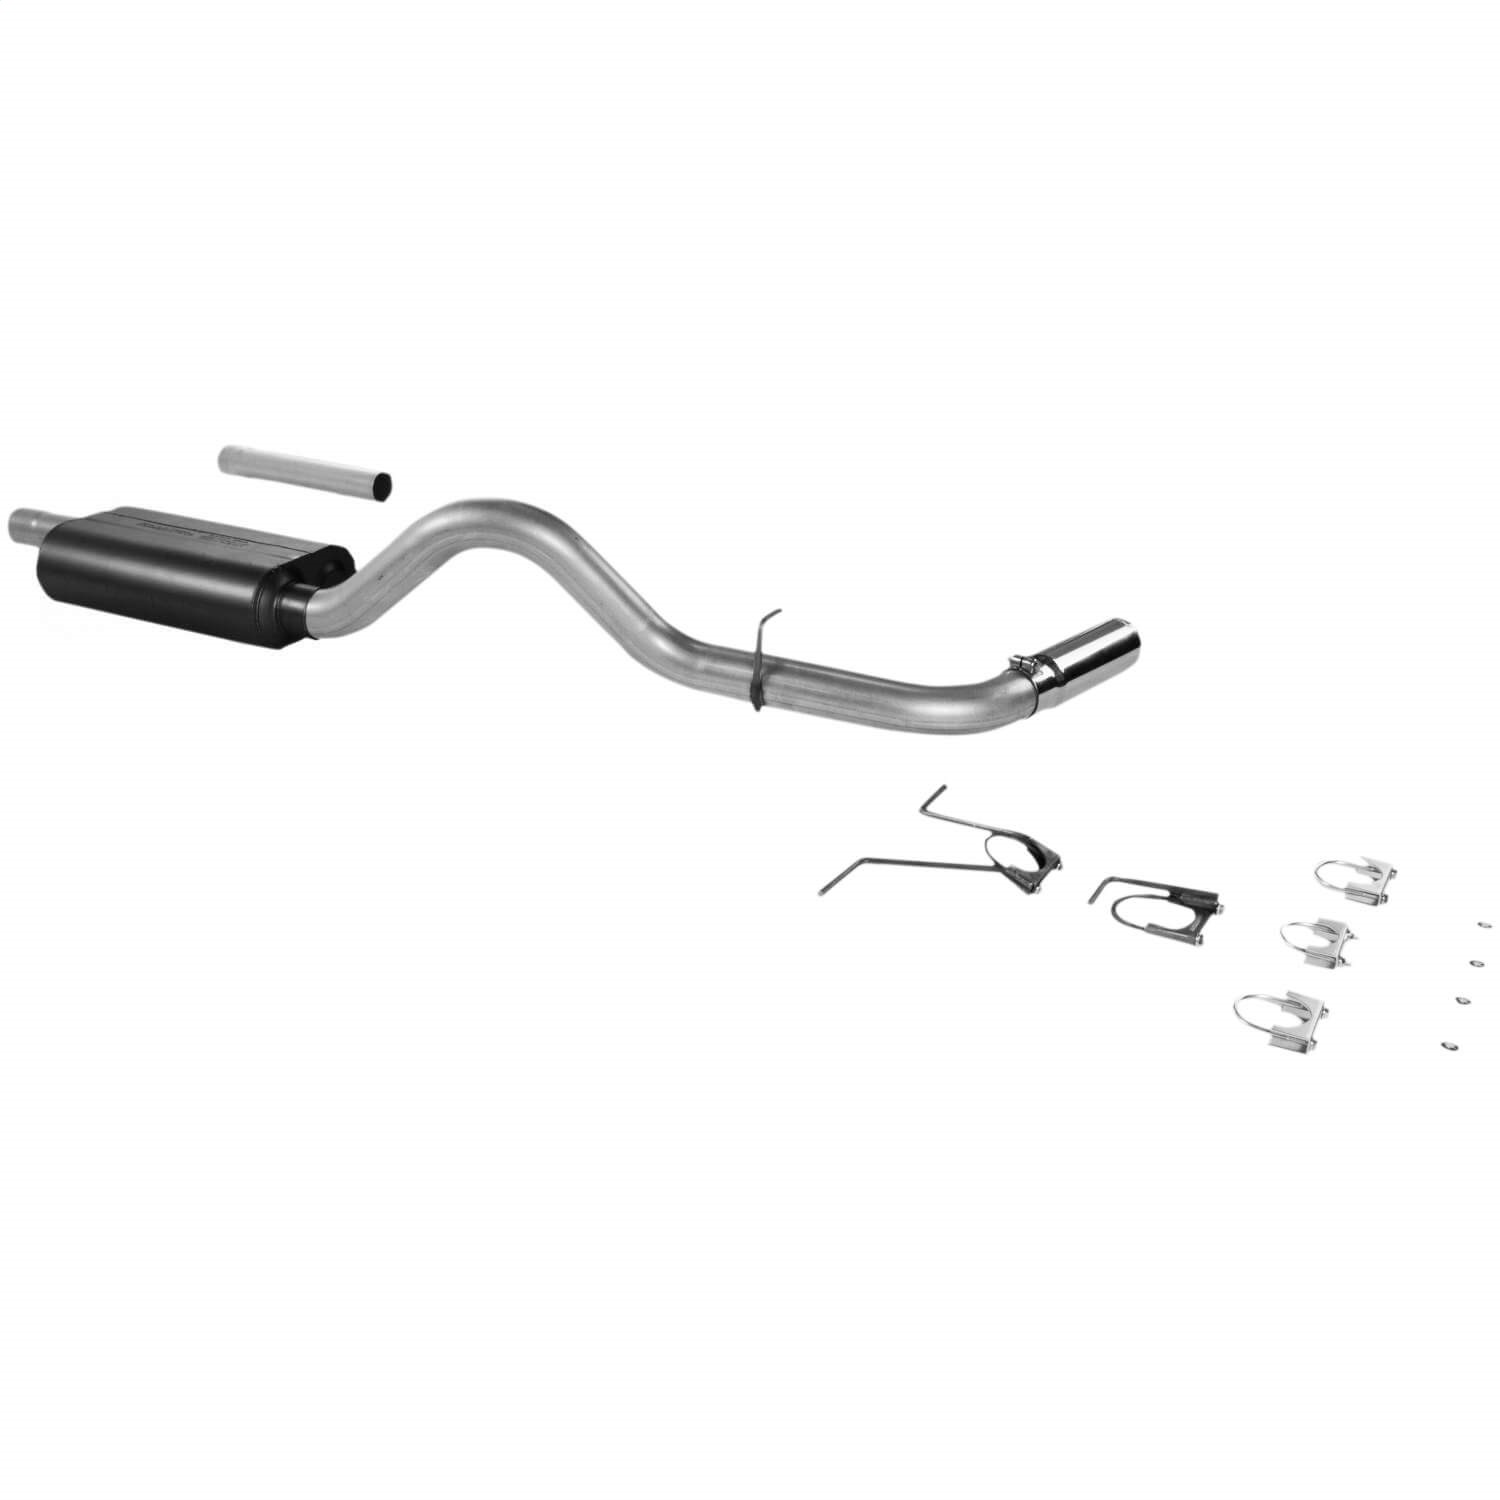 Flowmaster Force Ii Cat Back System Fits 00 03 Dakota